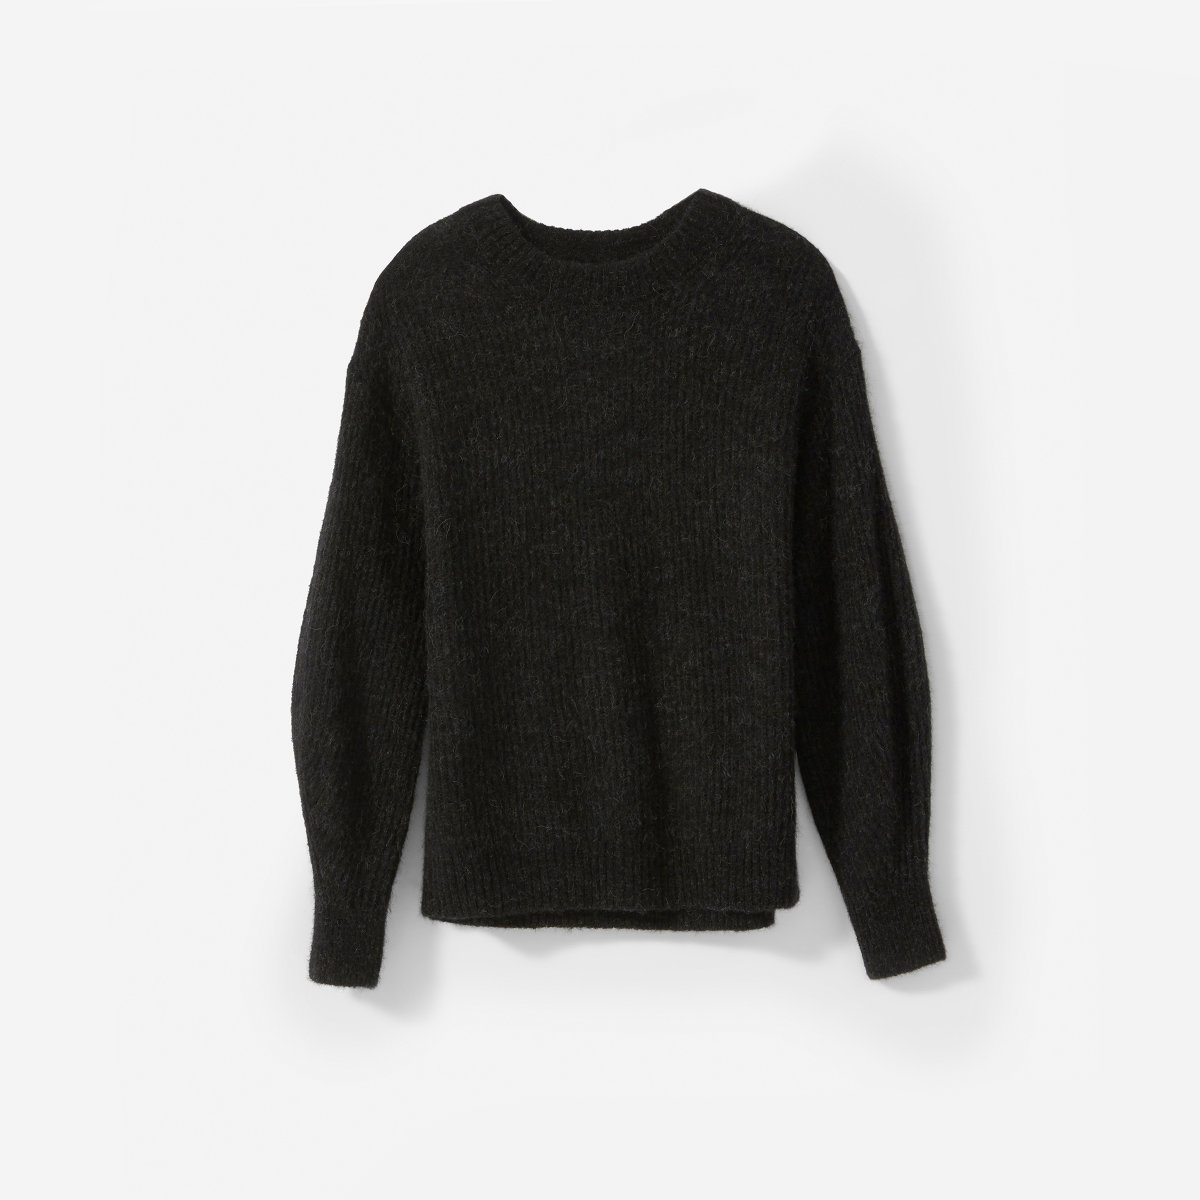 Sweater for her | $95 - Everlane